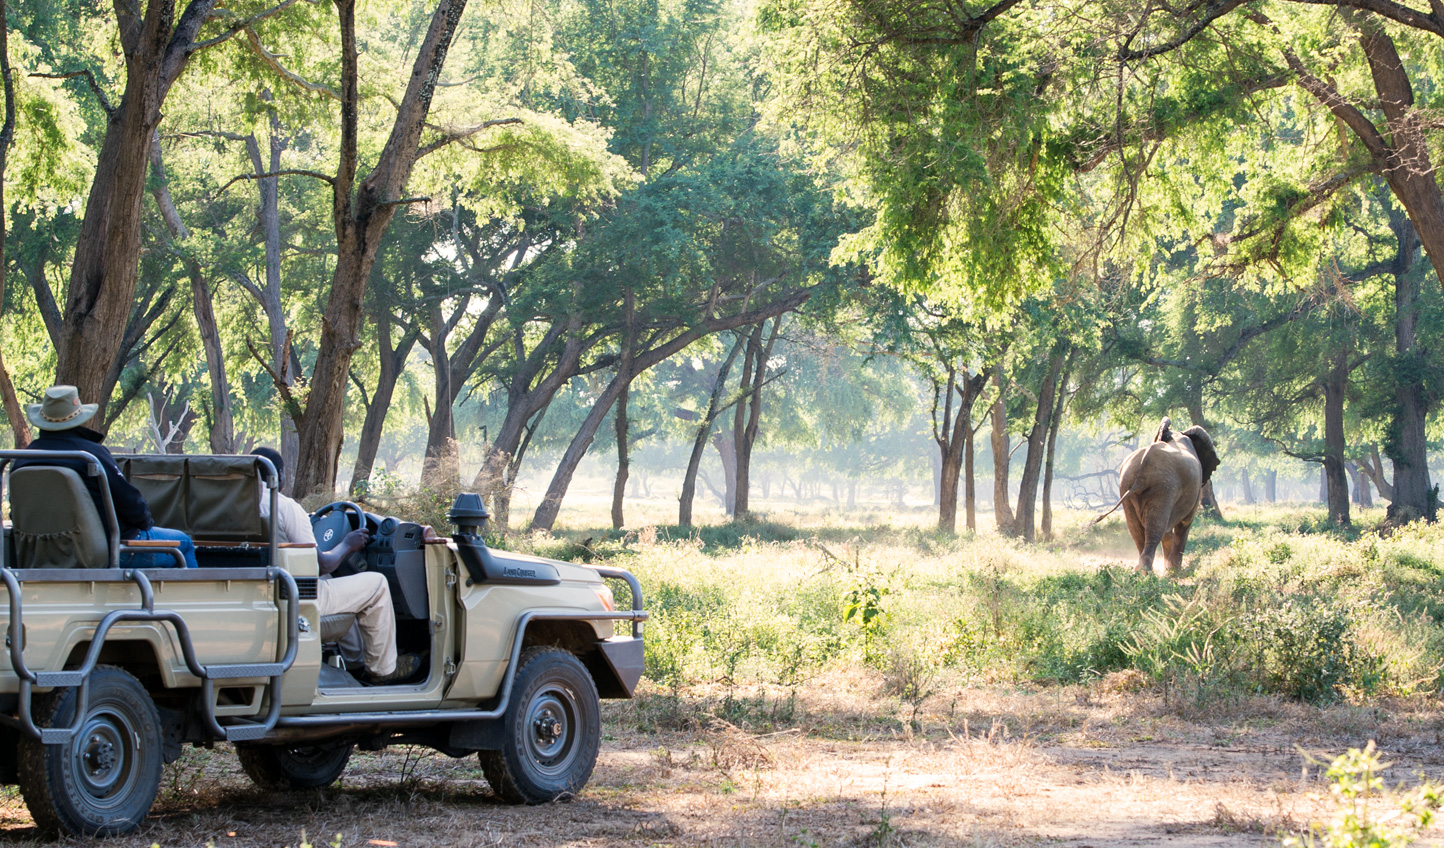 Head out on a game drive across the plains